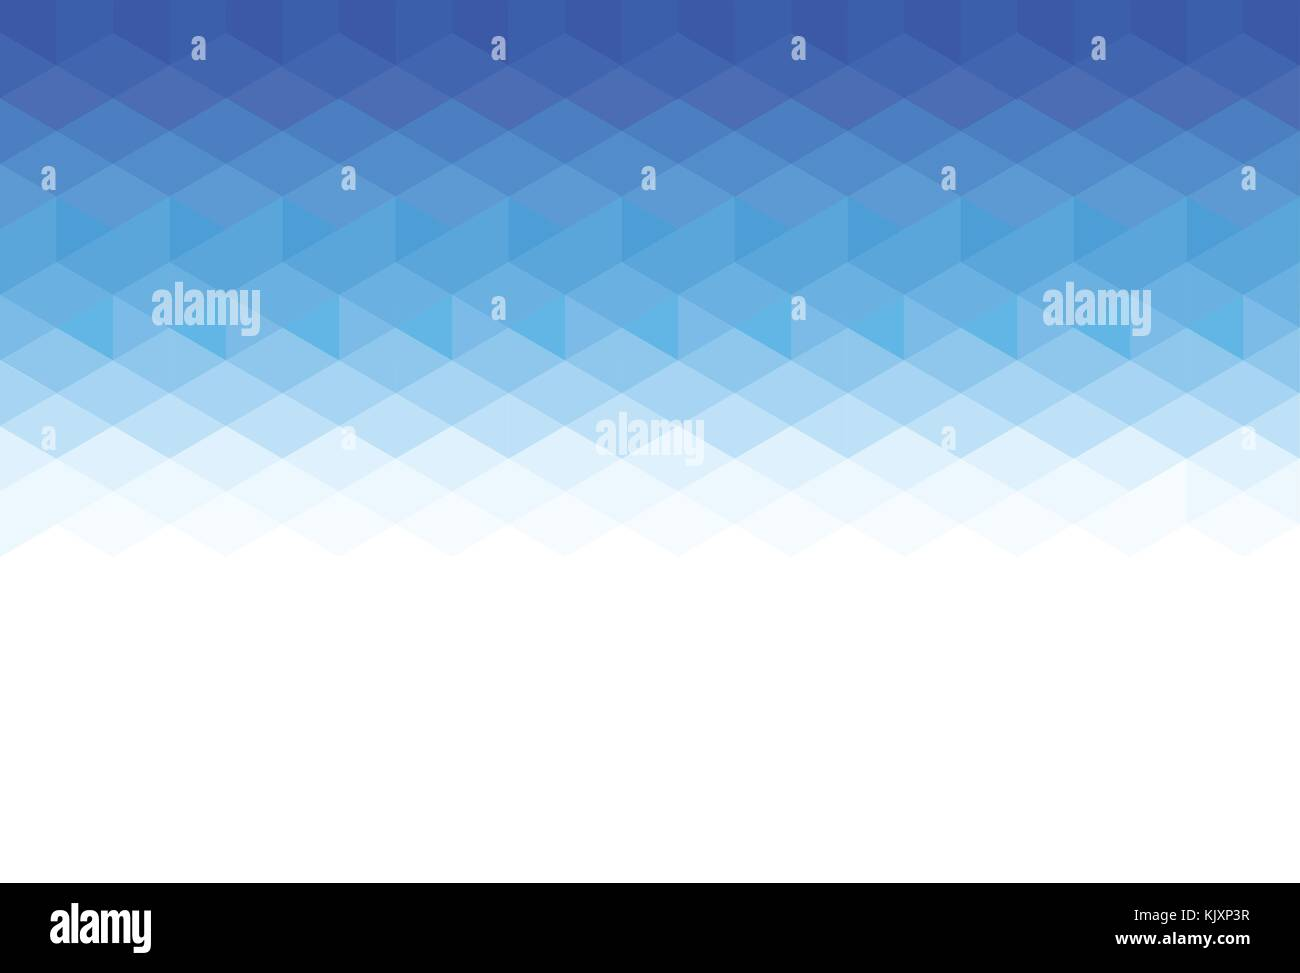 Abstract background blue, illustration - Stock Vector